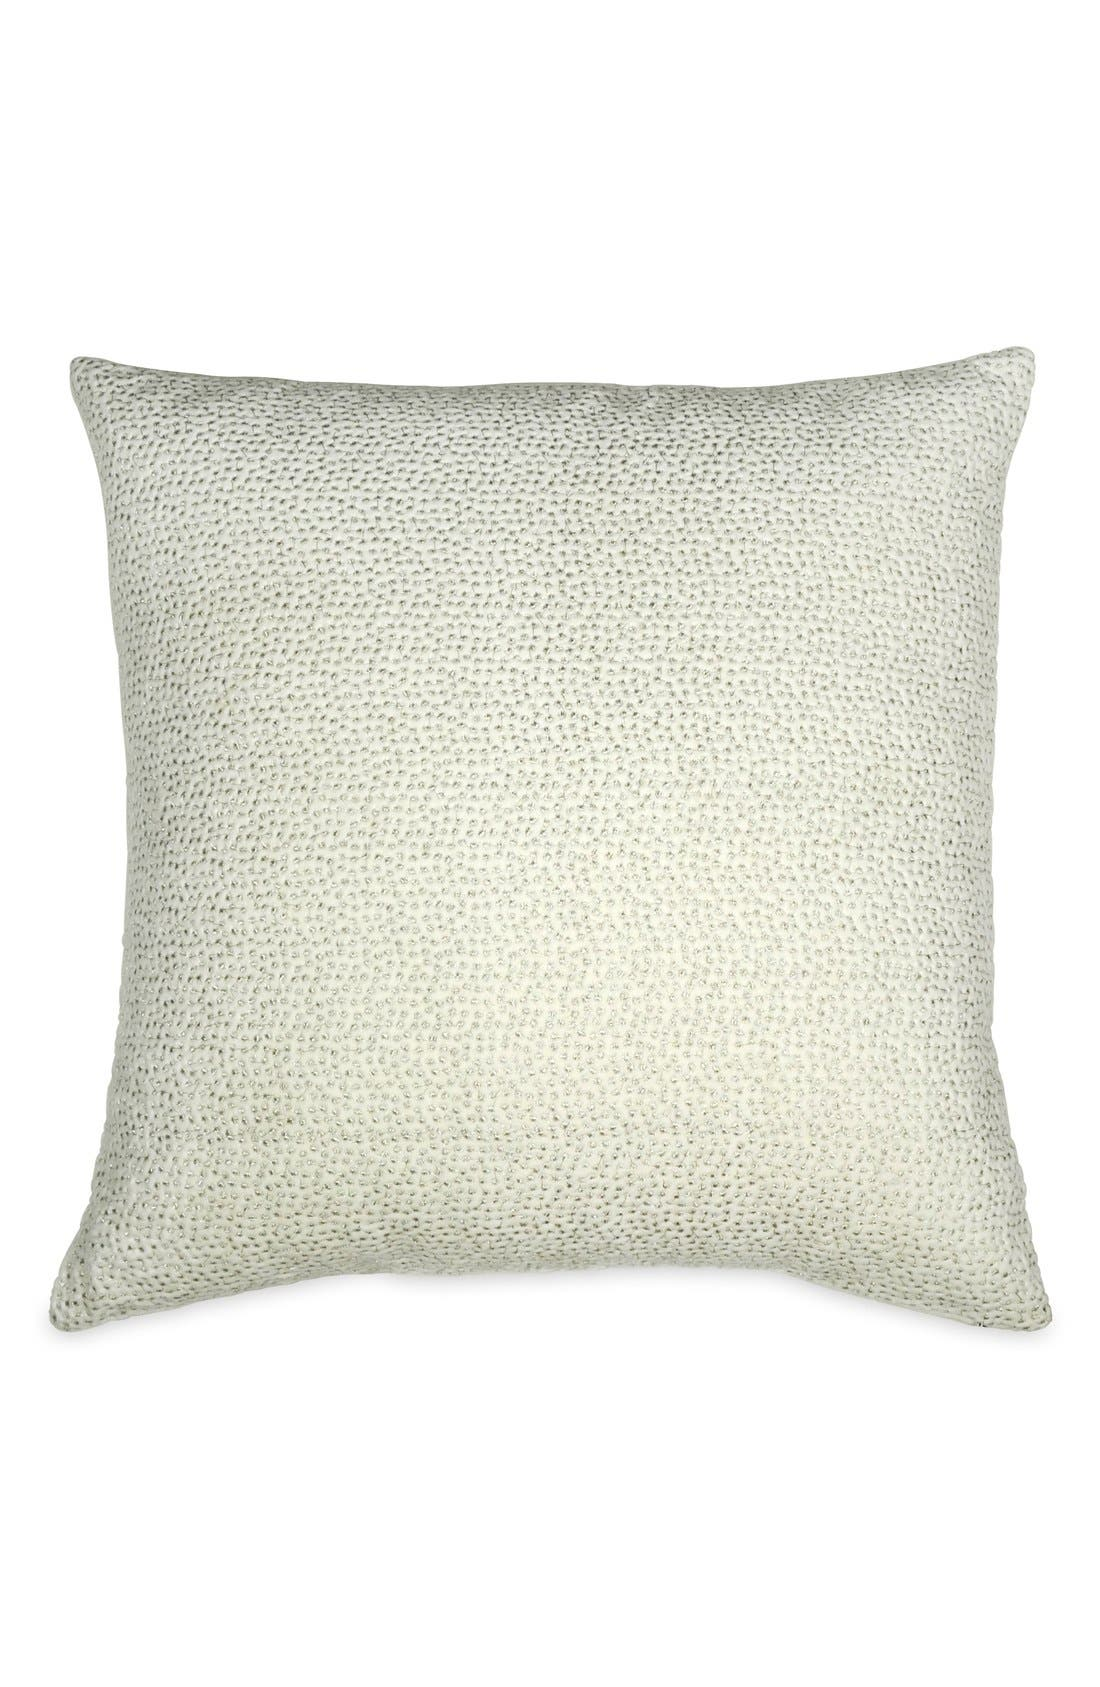 Main Image - Donna Karan Collection 'Exhale' Pillow